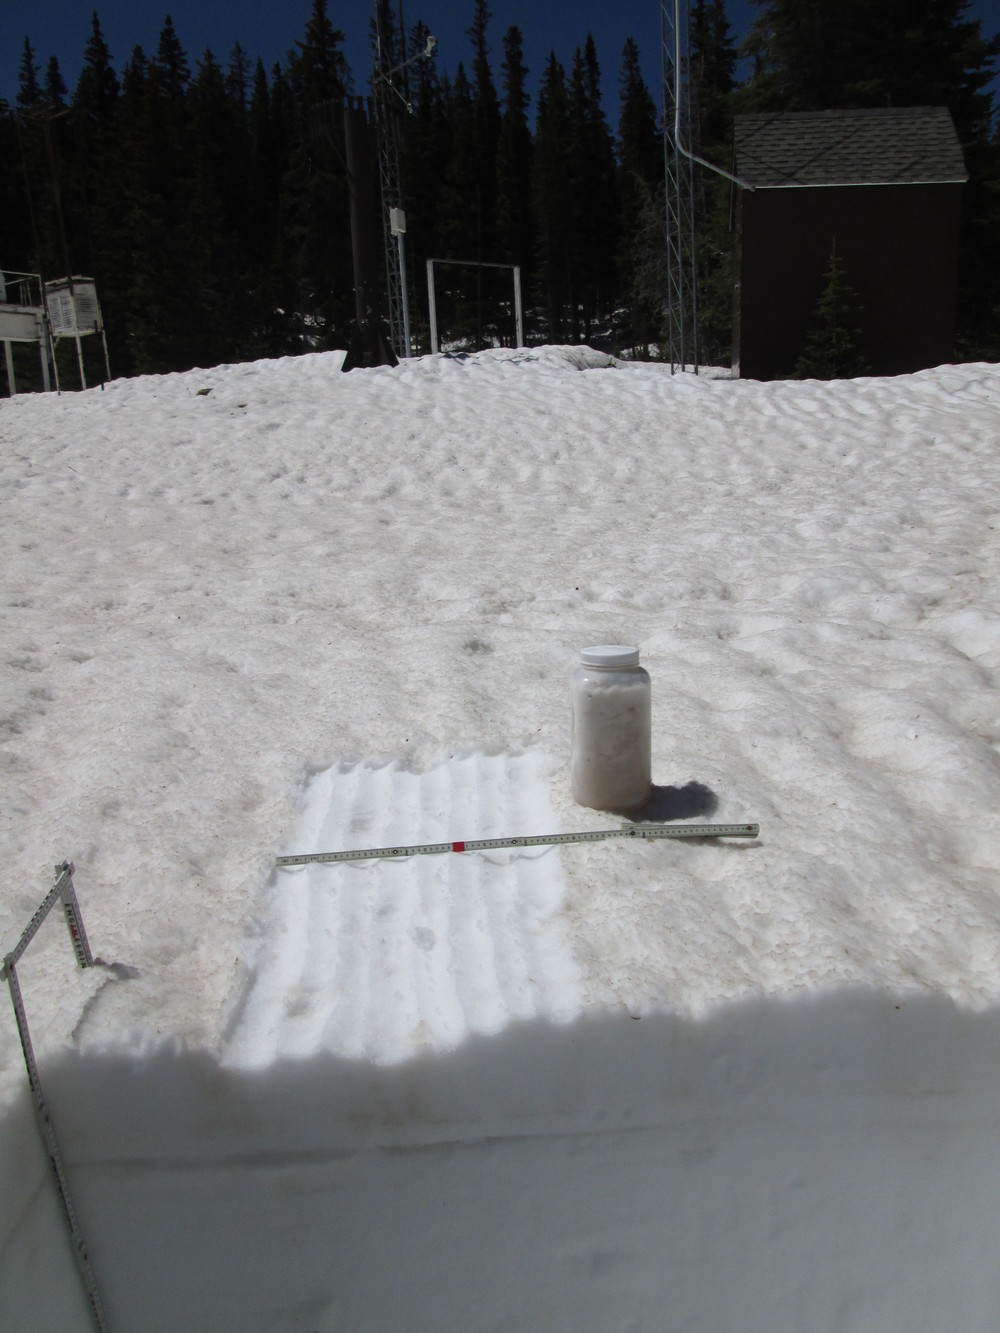 "The 35"" deep snow pit at Berthoud Summit on June 3 contained 15.5"" of SWE, almost exactly matching the SWE being reported at the time by the Snotel just a few yards away.  Merged dust containing at least events D3, D4, and D8 was exposed at the surface and an 'all layers merged' (ALM) sample was collected from an area measuring 1.00 m x 0.48 m, or 0.48 m2.  Dirty melt water from the snow surface had percolated downward in ""preferred flow channels"" into the underlying clean snowcover before spreading laterally at a layer boundary within the snowpack and creating a layer of dust-stained slush, as seen here a few inches below the surface in the snow pit face.   Nonetheless, the ALM sample did capture the vast majority of the merged dust material, for analysis of its chemical and other properties."